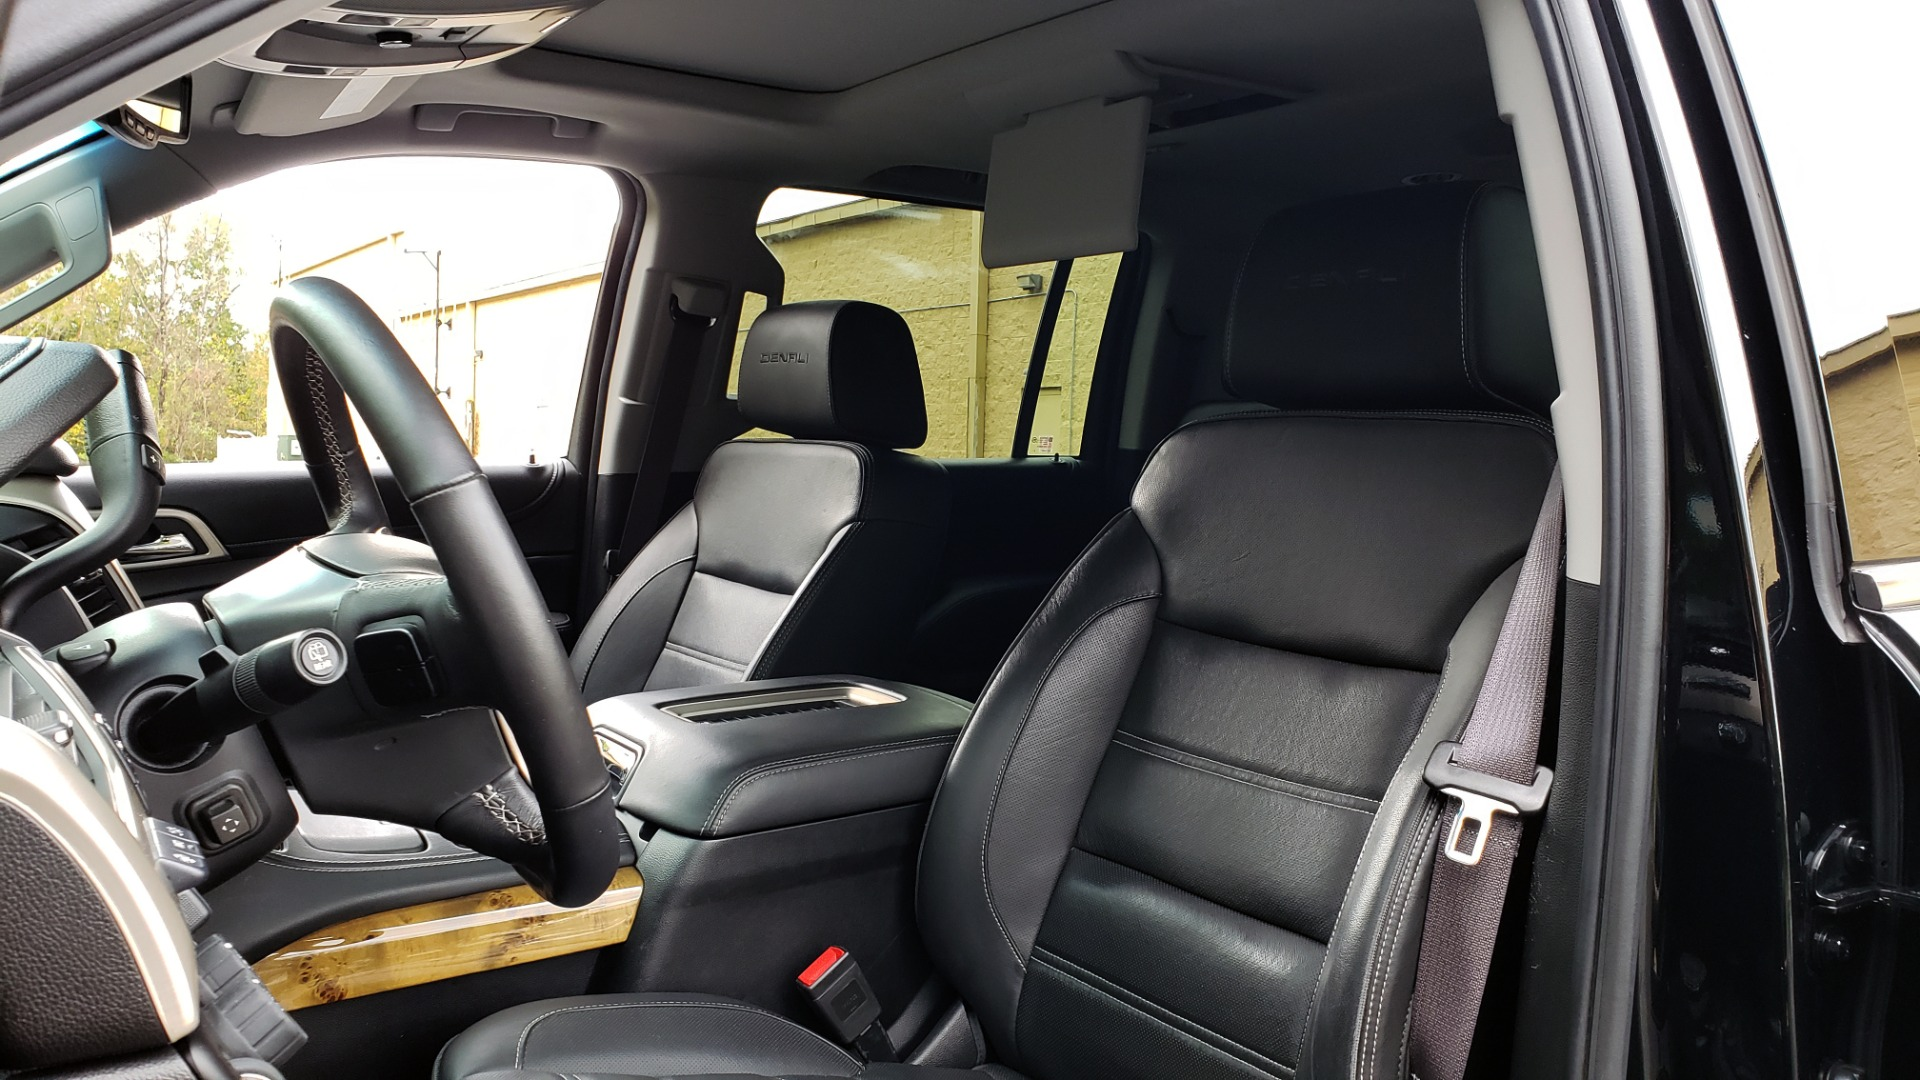 Used 2017 GMC YUKON XL DENALI 4WD / NAV / SUNROOF / ENT / 3-ROWS / BOSE / REARVIEW for sale Sold at Formula Imports in Charlotte NC 28227 39